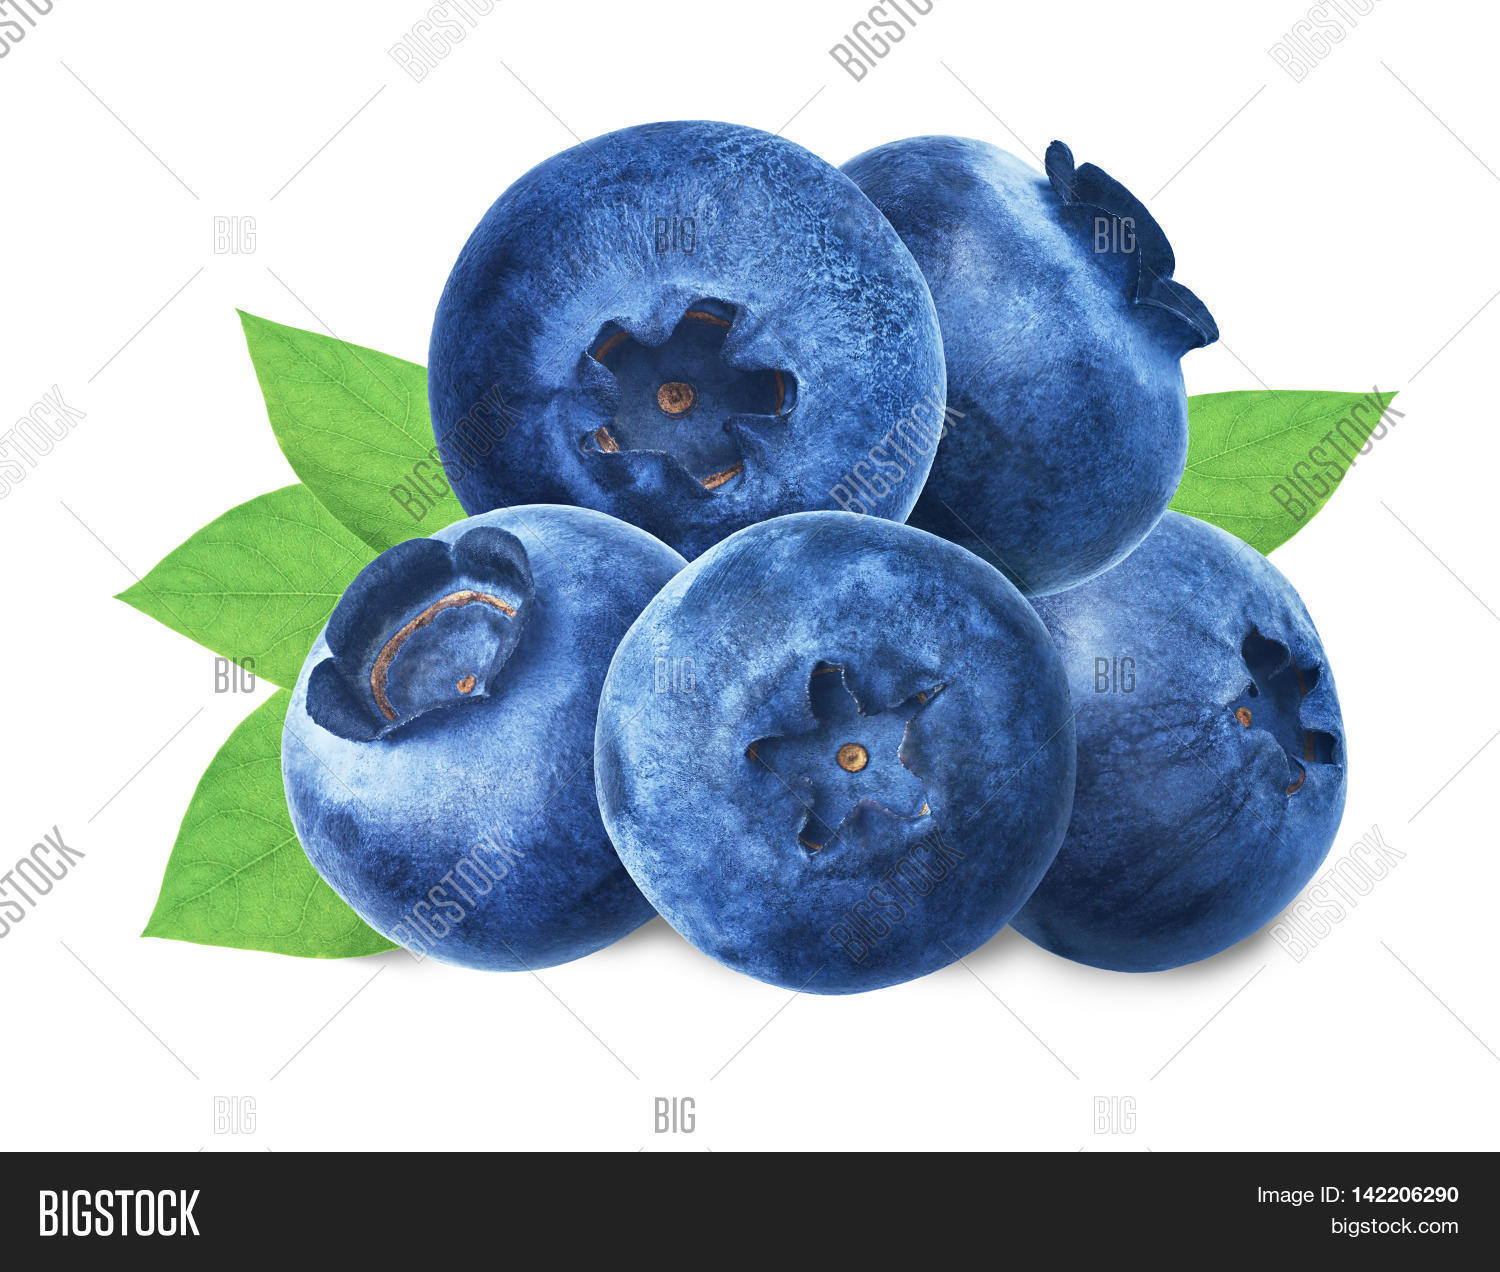 What is useful blueberries 4